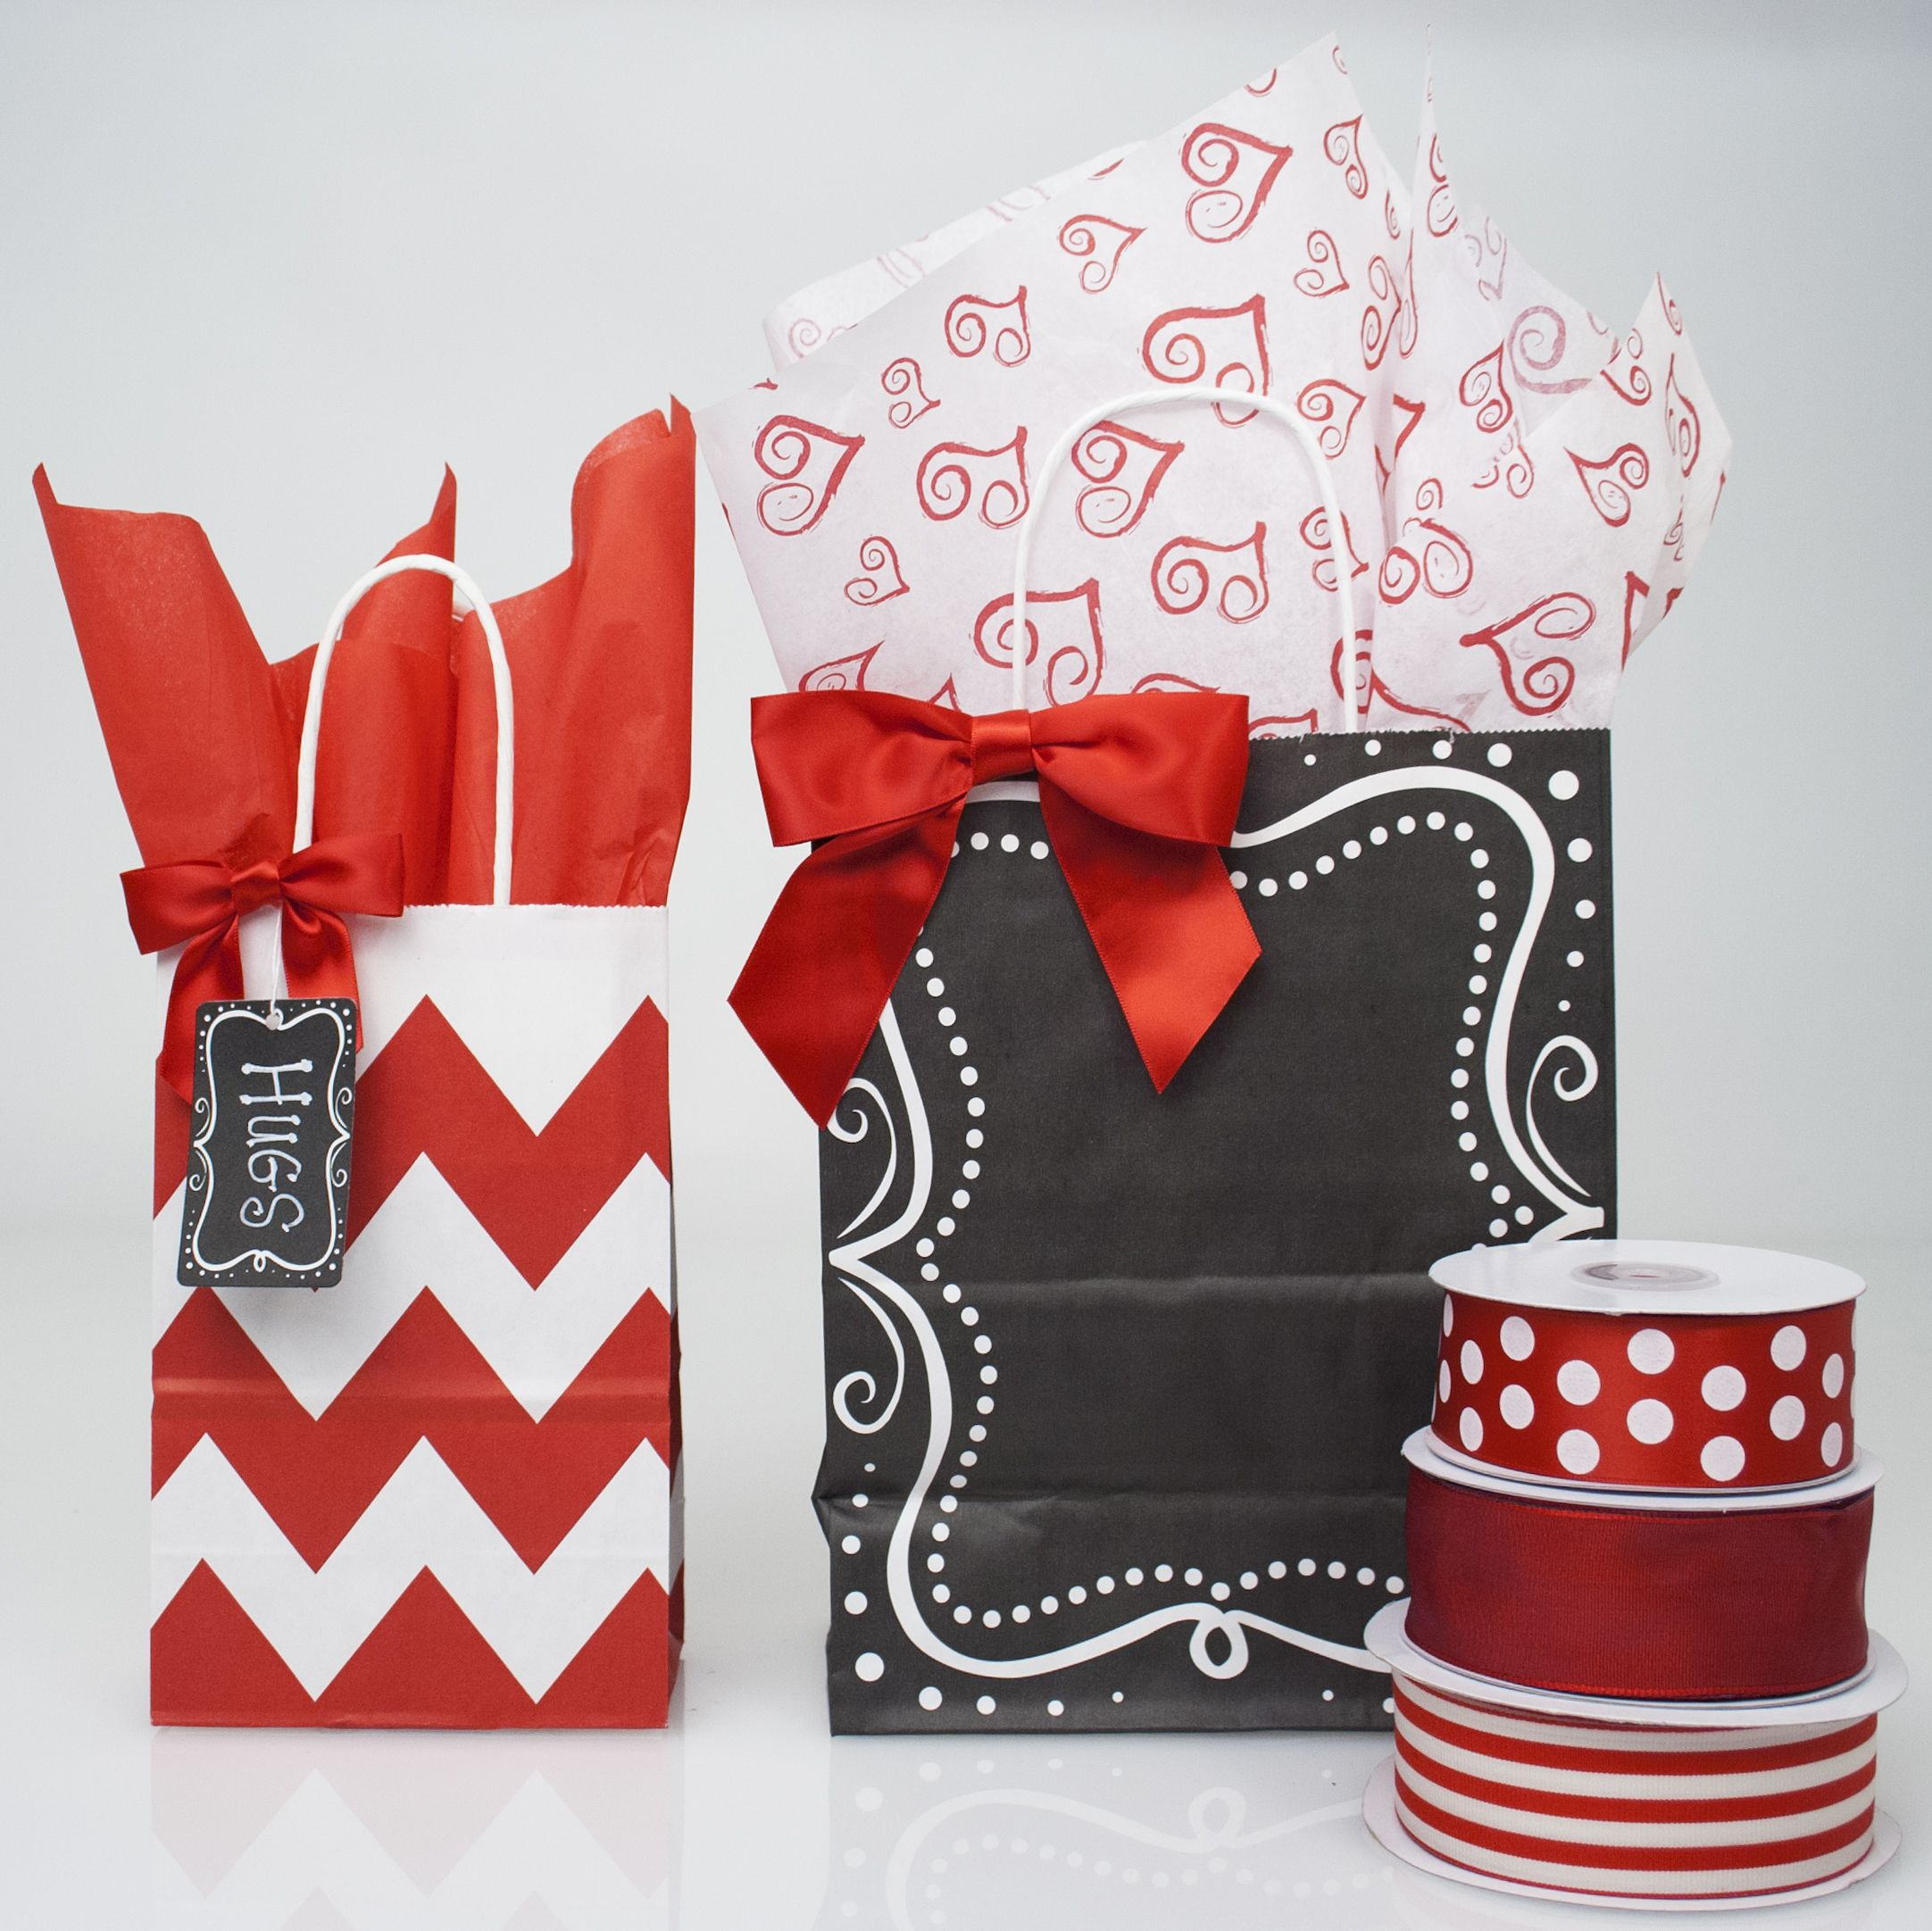 SWEETIES gift-wrap with gift tag